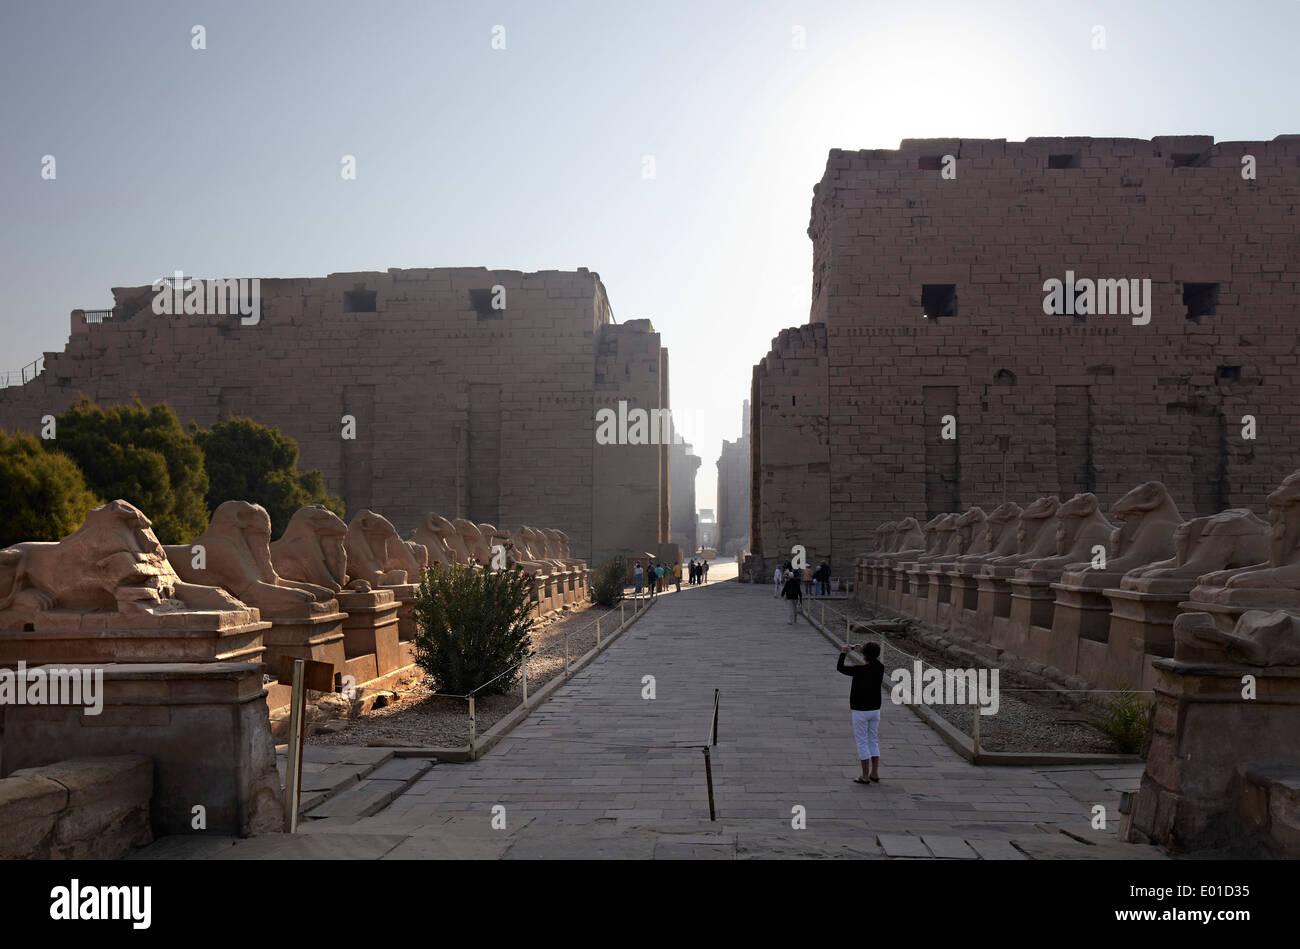 Karnak Temple. Largest religious building in the world. Open air museum. Avenue of rams. - Stock Image